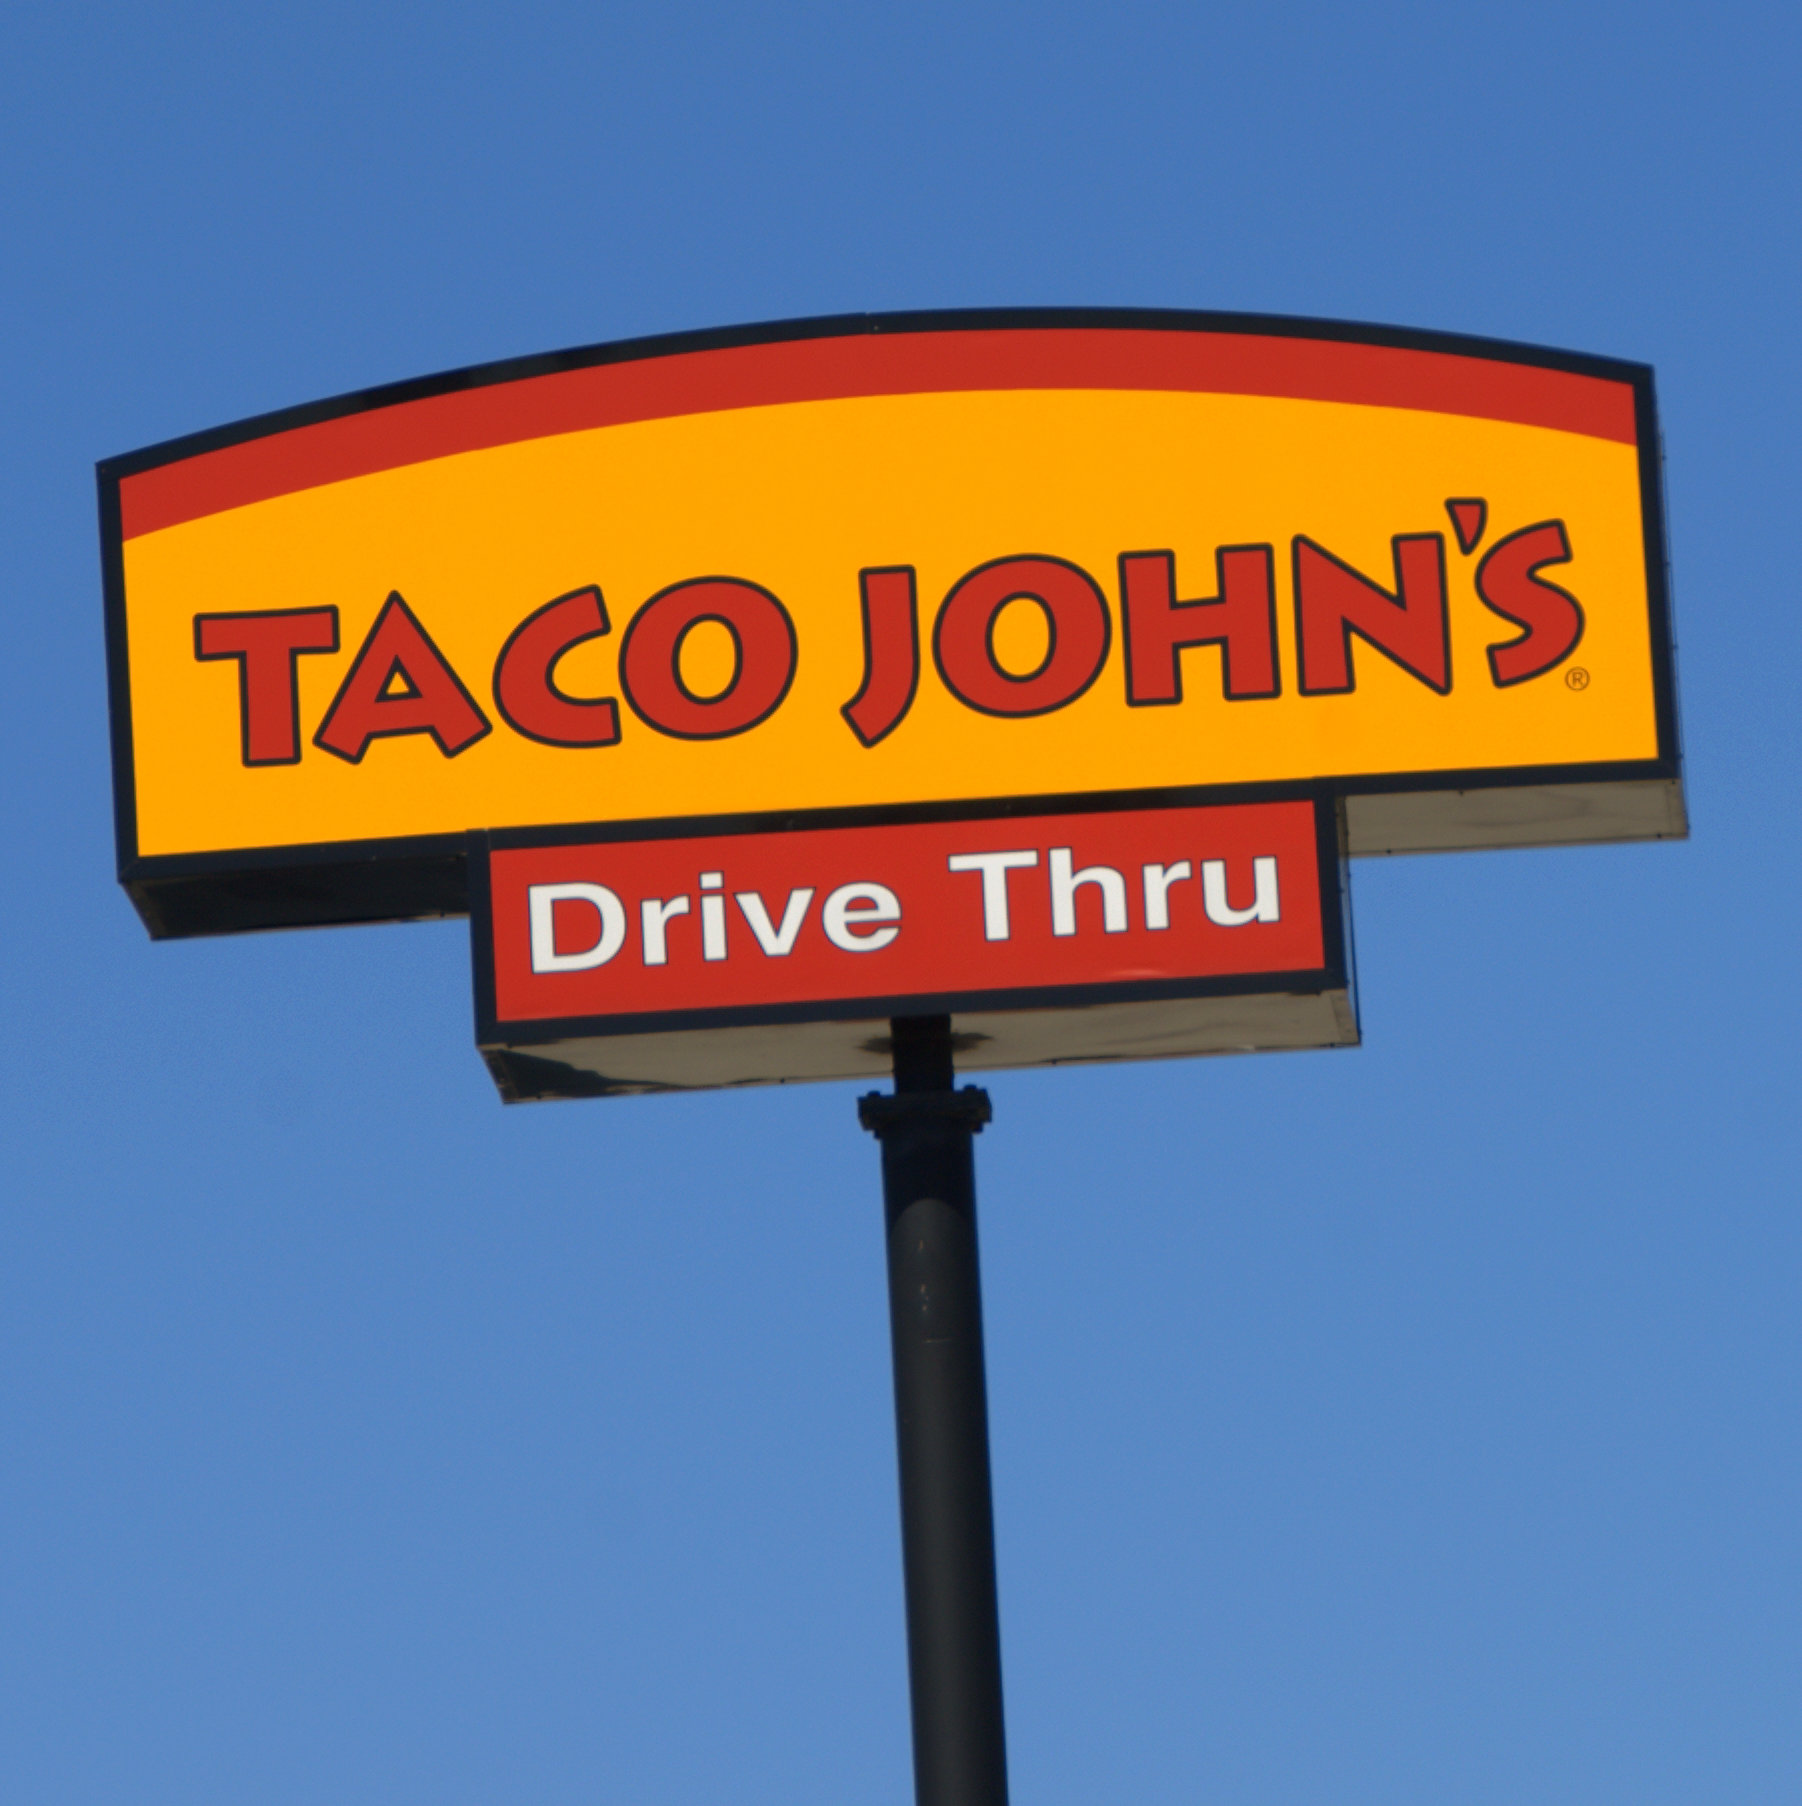 Taco John's sign. Photo by flickr user Mr. Blue MauMau. (CC BY 2.0) https://creativecommons.org/licenses/by/2.0/